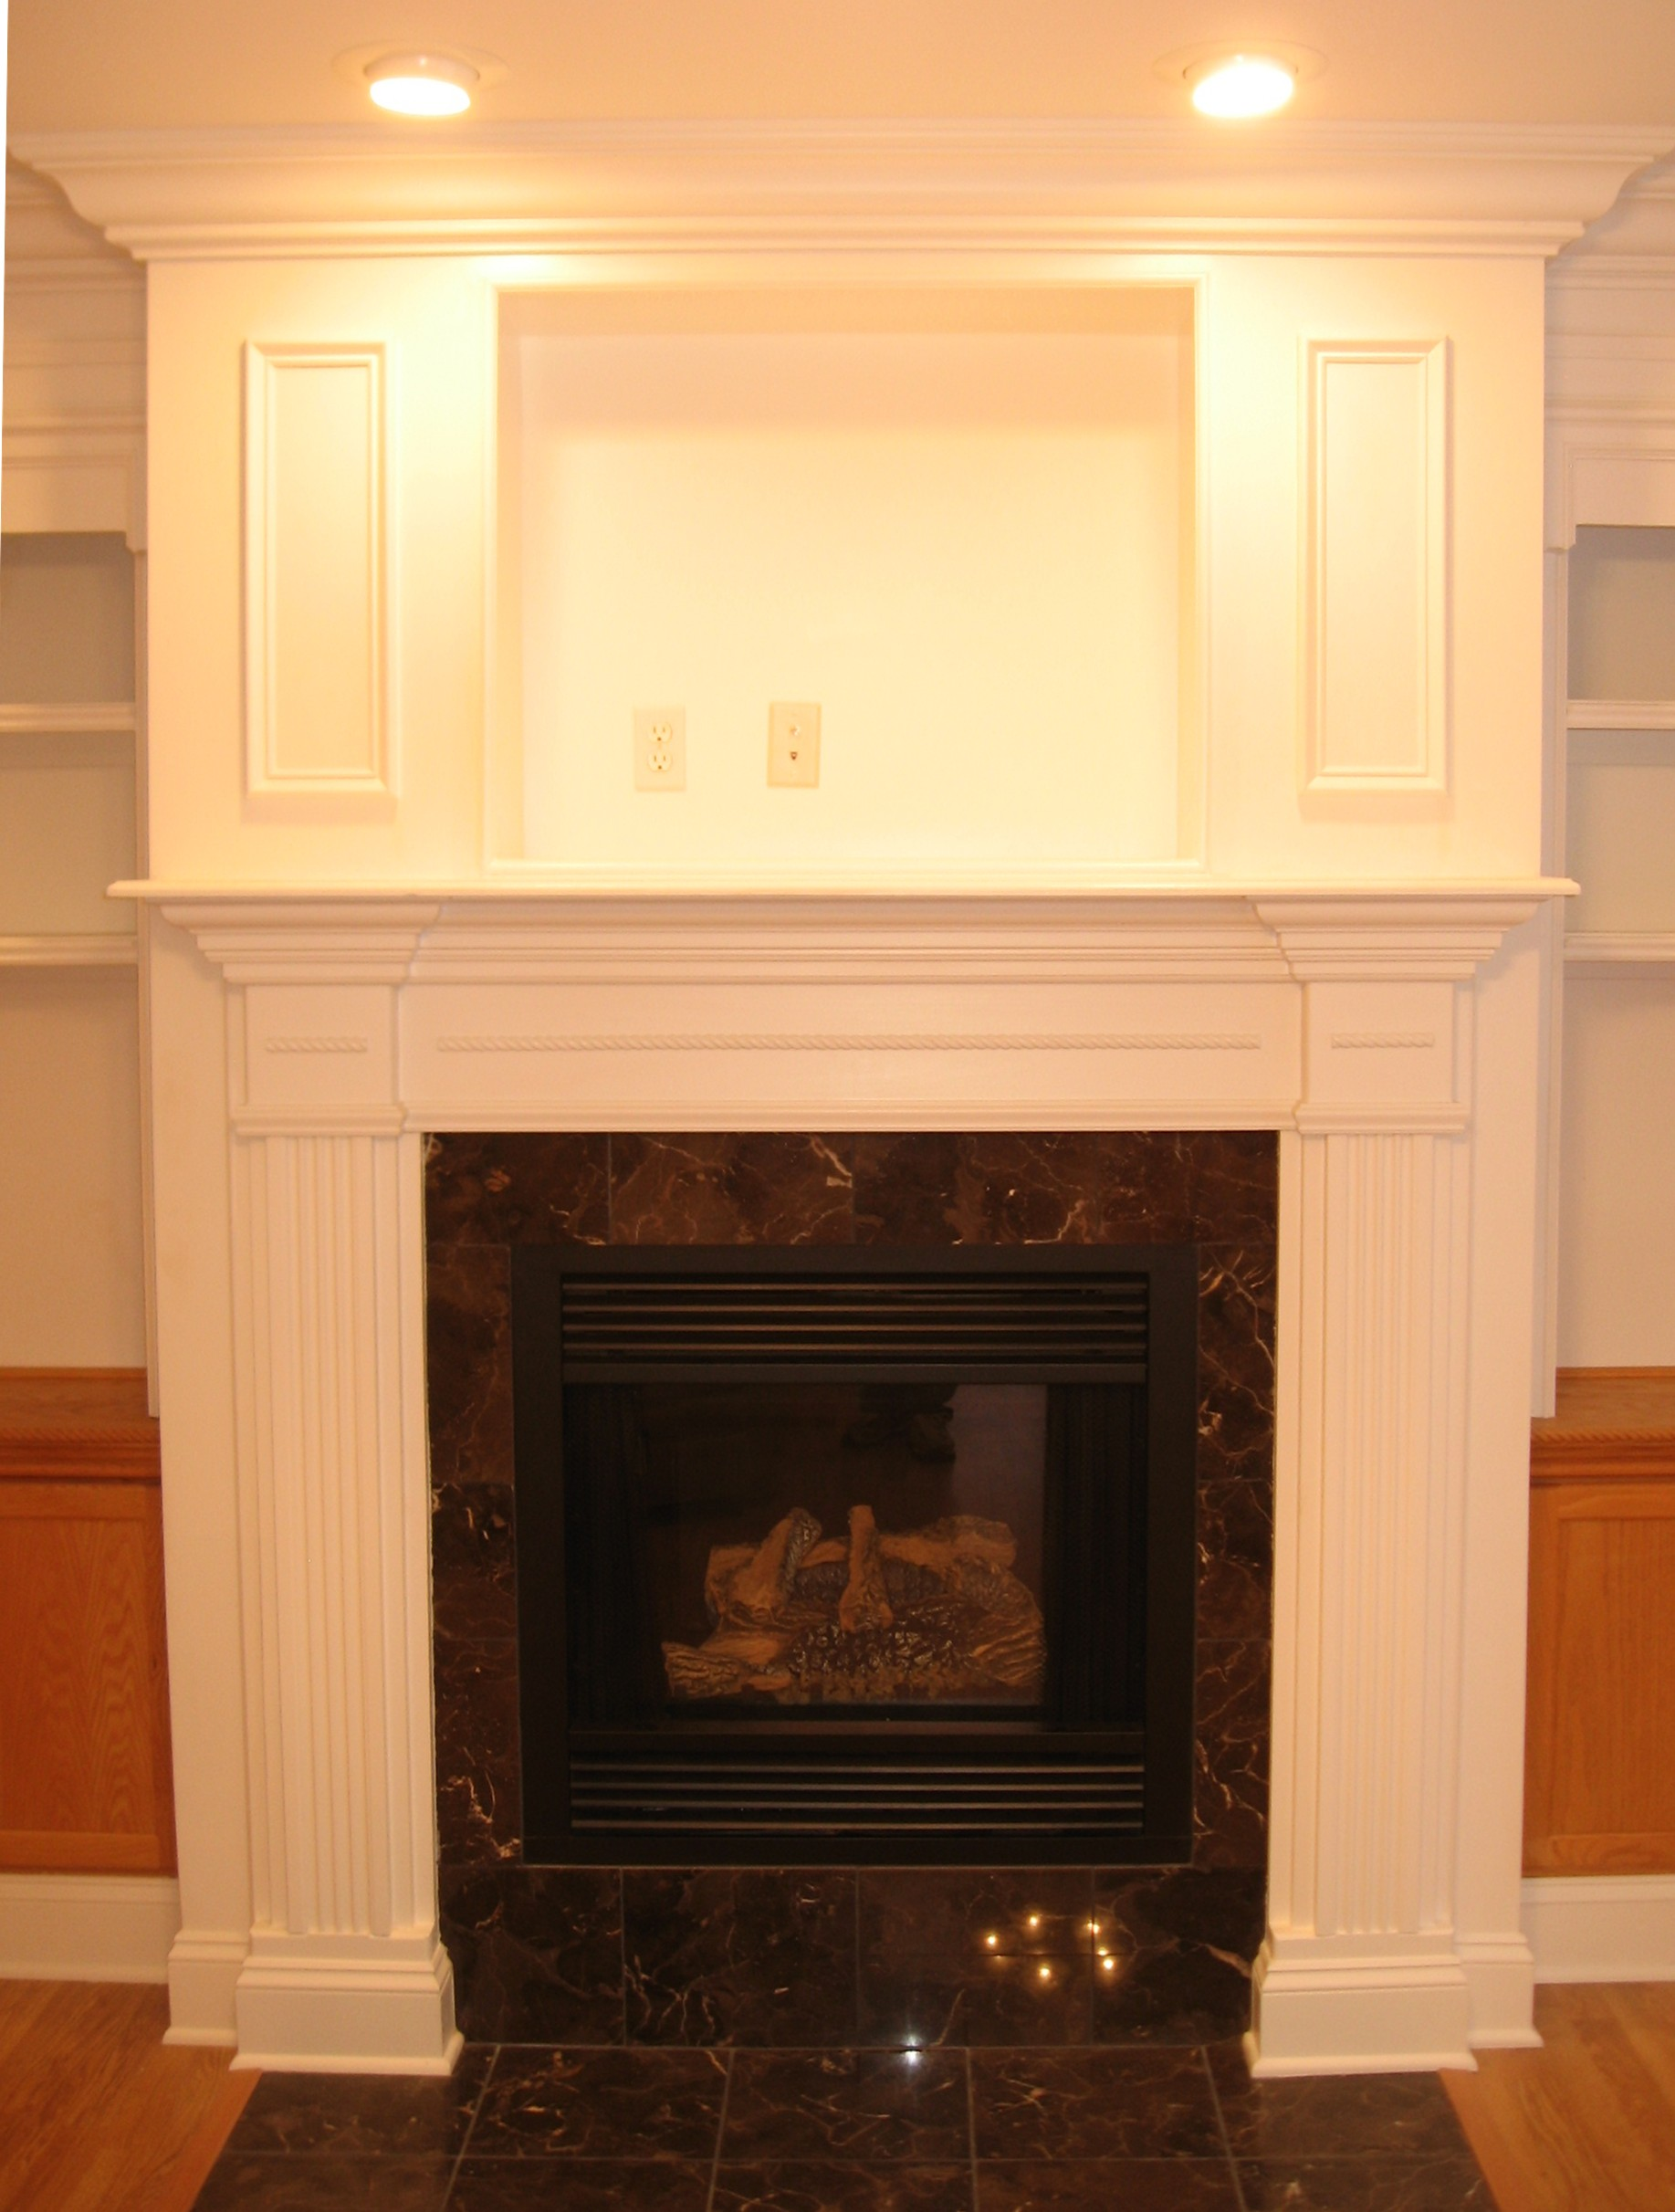 Fireplace surround kits ideas homesfeed - Brick fireplace surrounds ideas ...